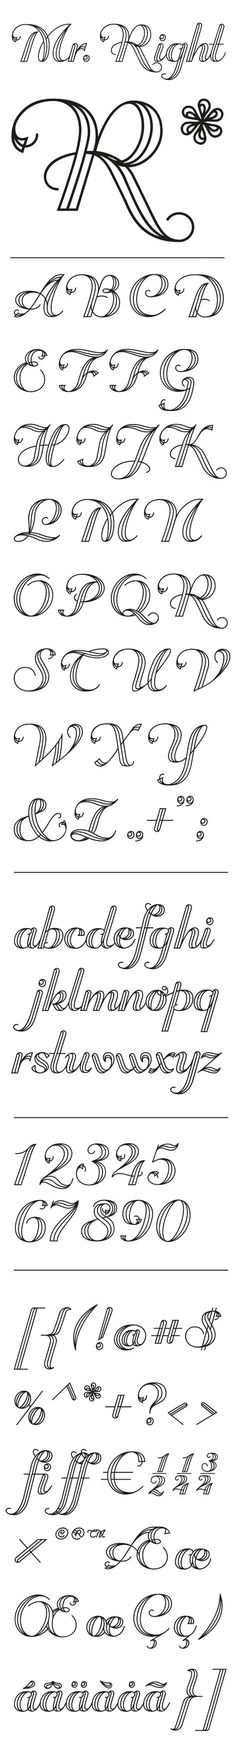 Simple alphabet letters that can be drawn by hand Journal, hand lettering, alphabet, font Easy hand drawn lettering great for journaling scrapbooking wedding invitations Hand Lettering Fonts, Doodle Lettering, Creative Lettering, Lettering Styles, Handwriting Fonts, Typography Fonts, Cursive, Penmanship, Letter Fonts